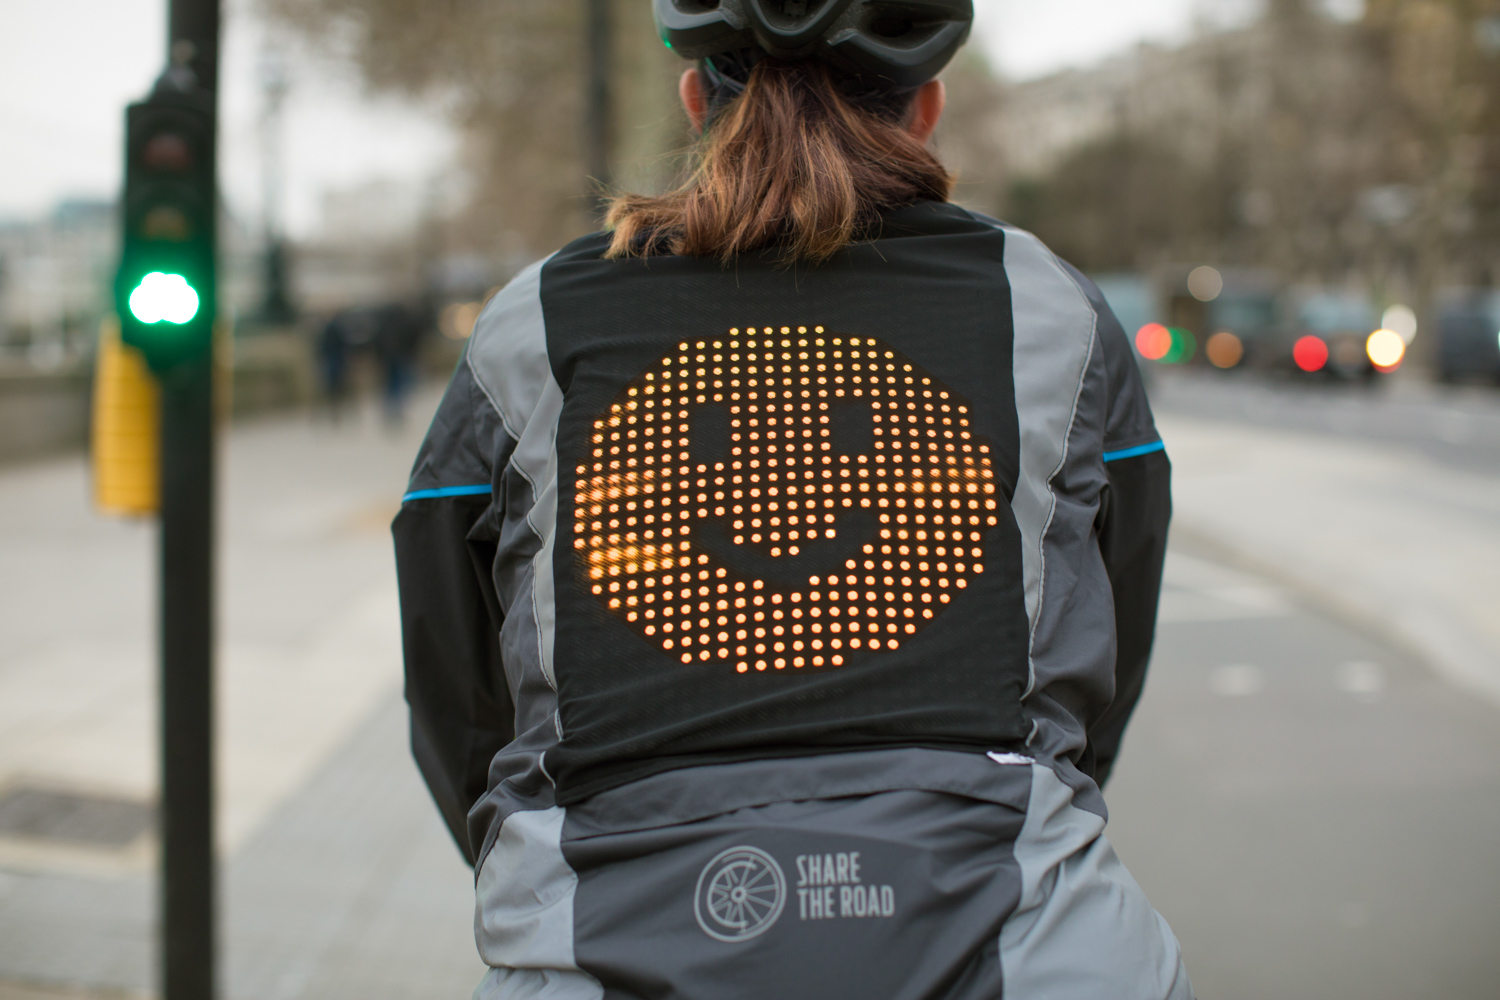 Car News | Ford designs an 'Emoji Jacket' for cyclists | CompleteCar.ie